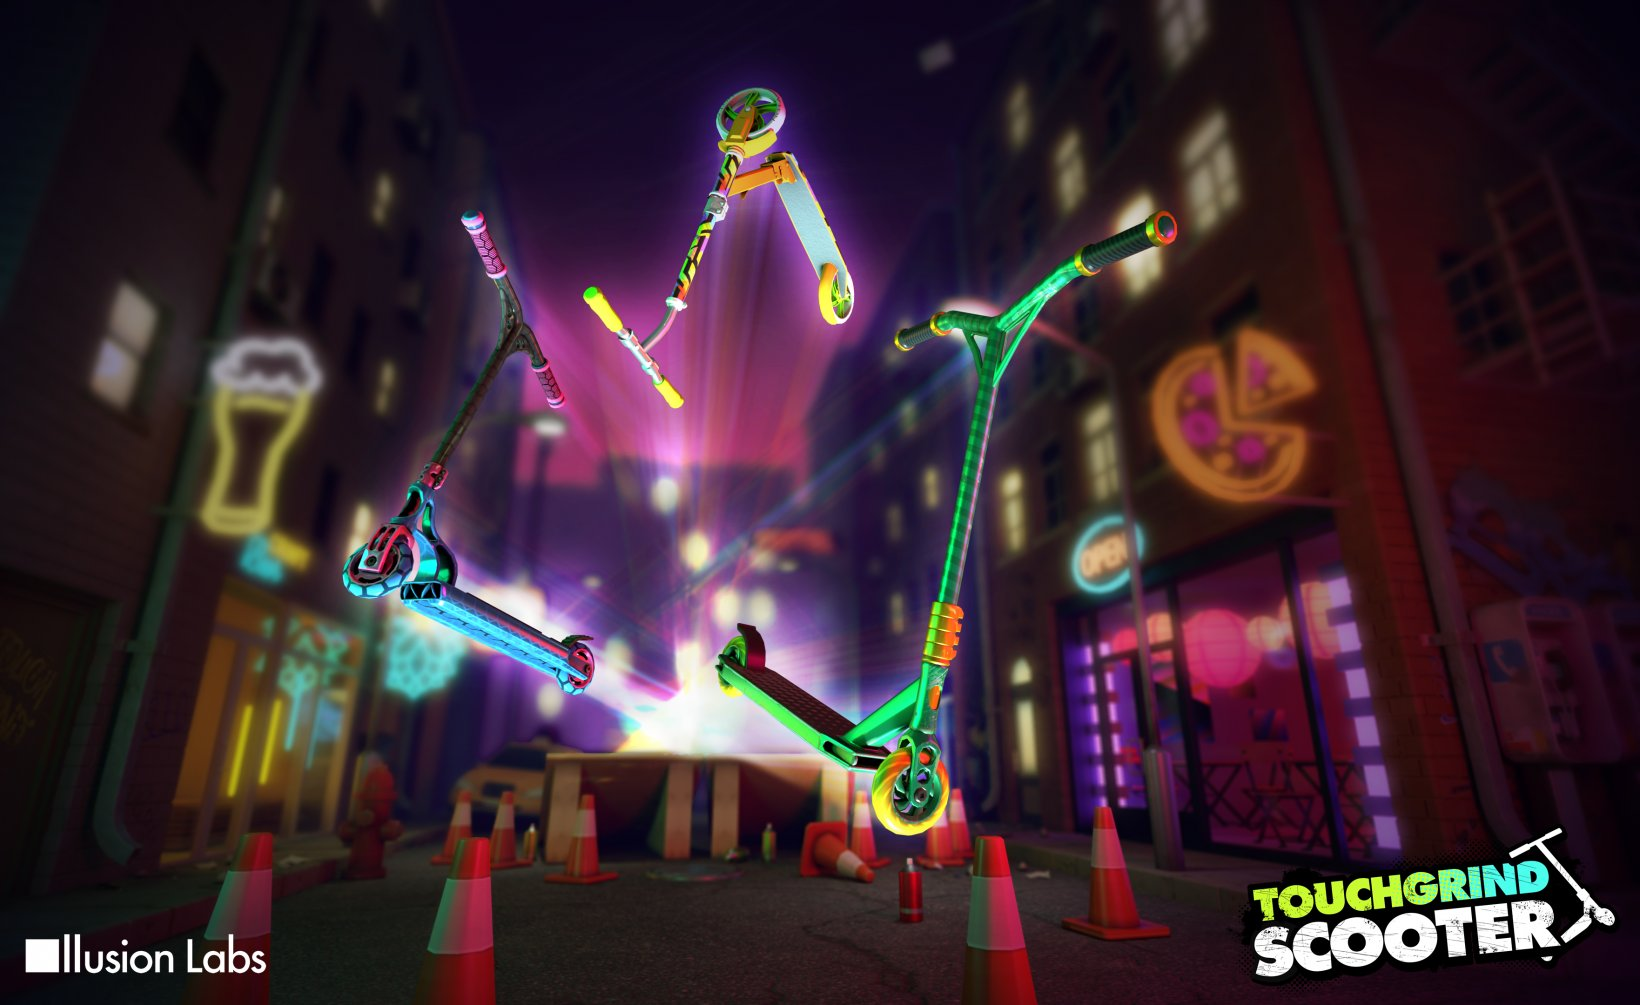 Touchgrind Scooter: Three things to know about the two-wheeler game